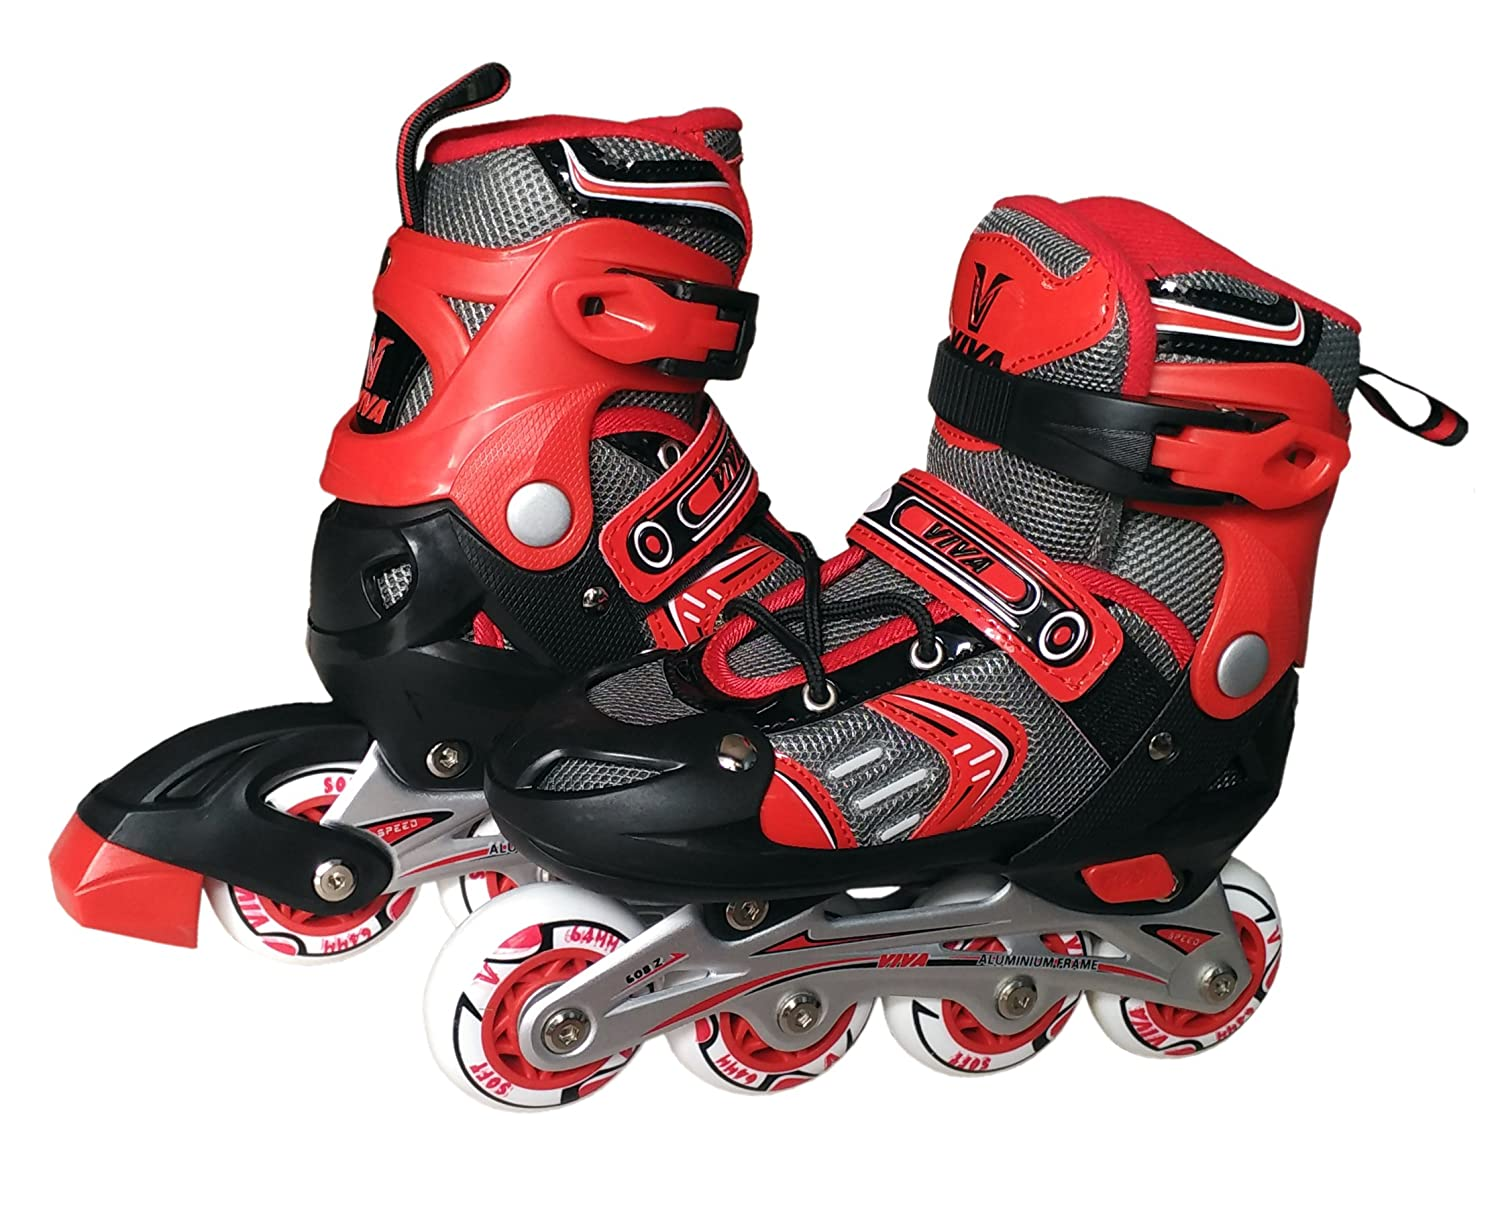 Buy Viva Professional Inline Skates Online at Low Prices in India